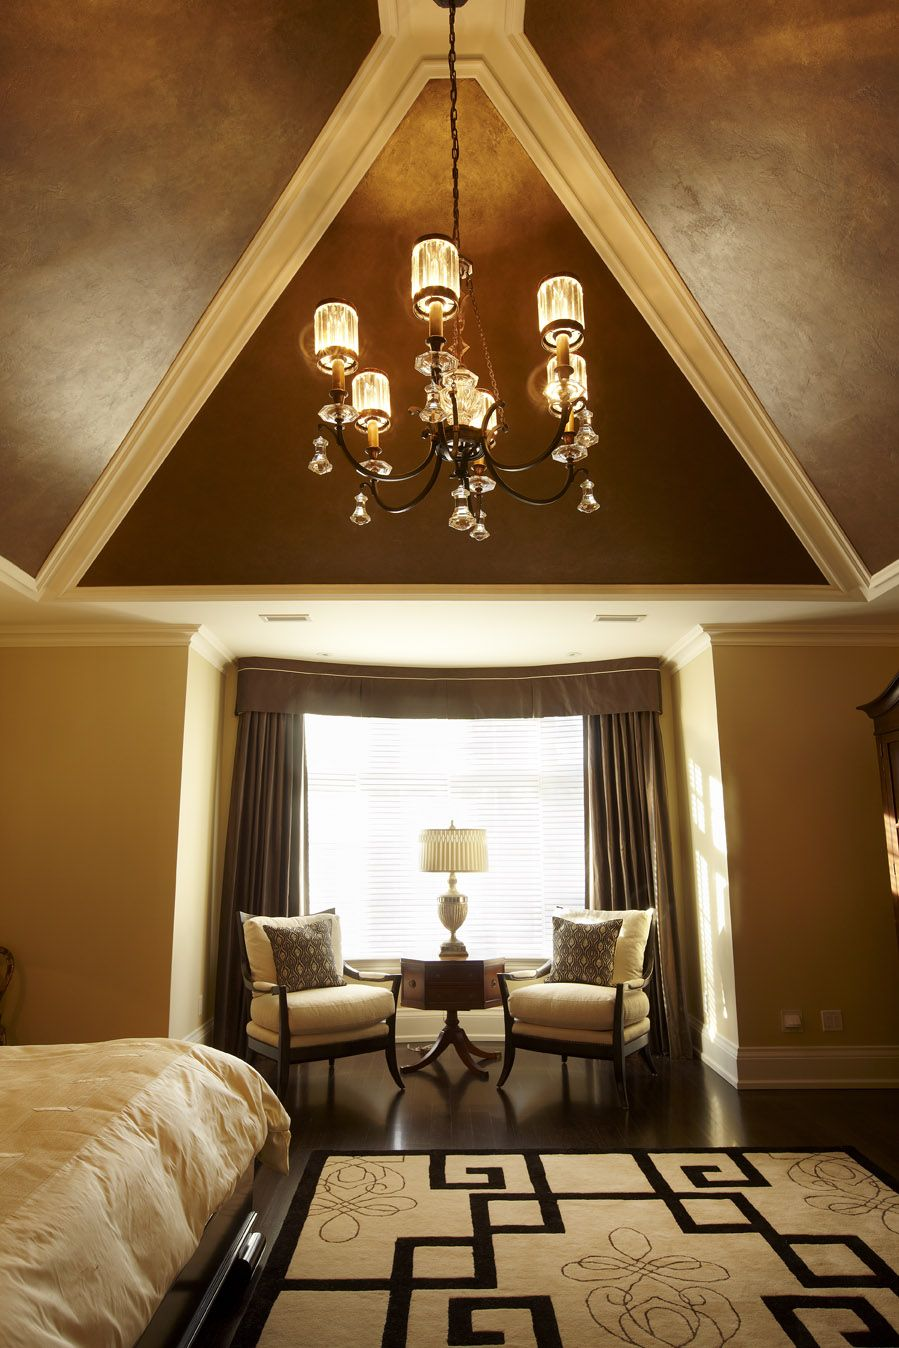 A Transitional Style Great Room By Parkyn Design Www Parkyndesign Com: Interior Design, Interior, Beautiful Bedrooms